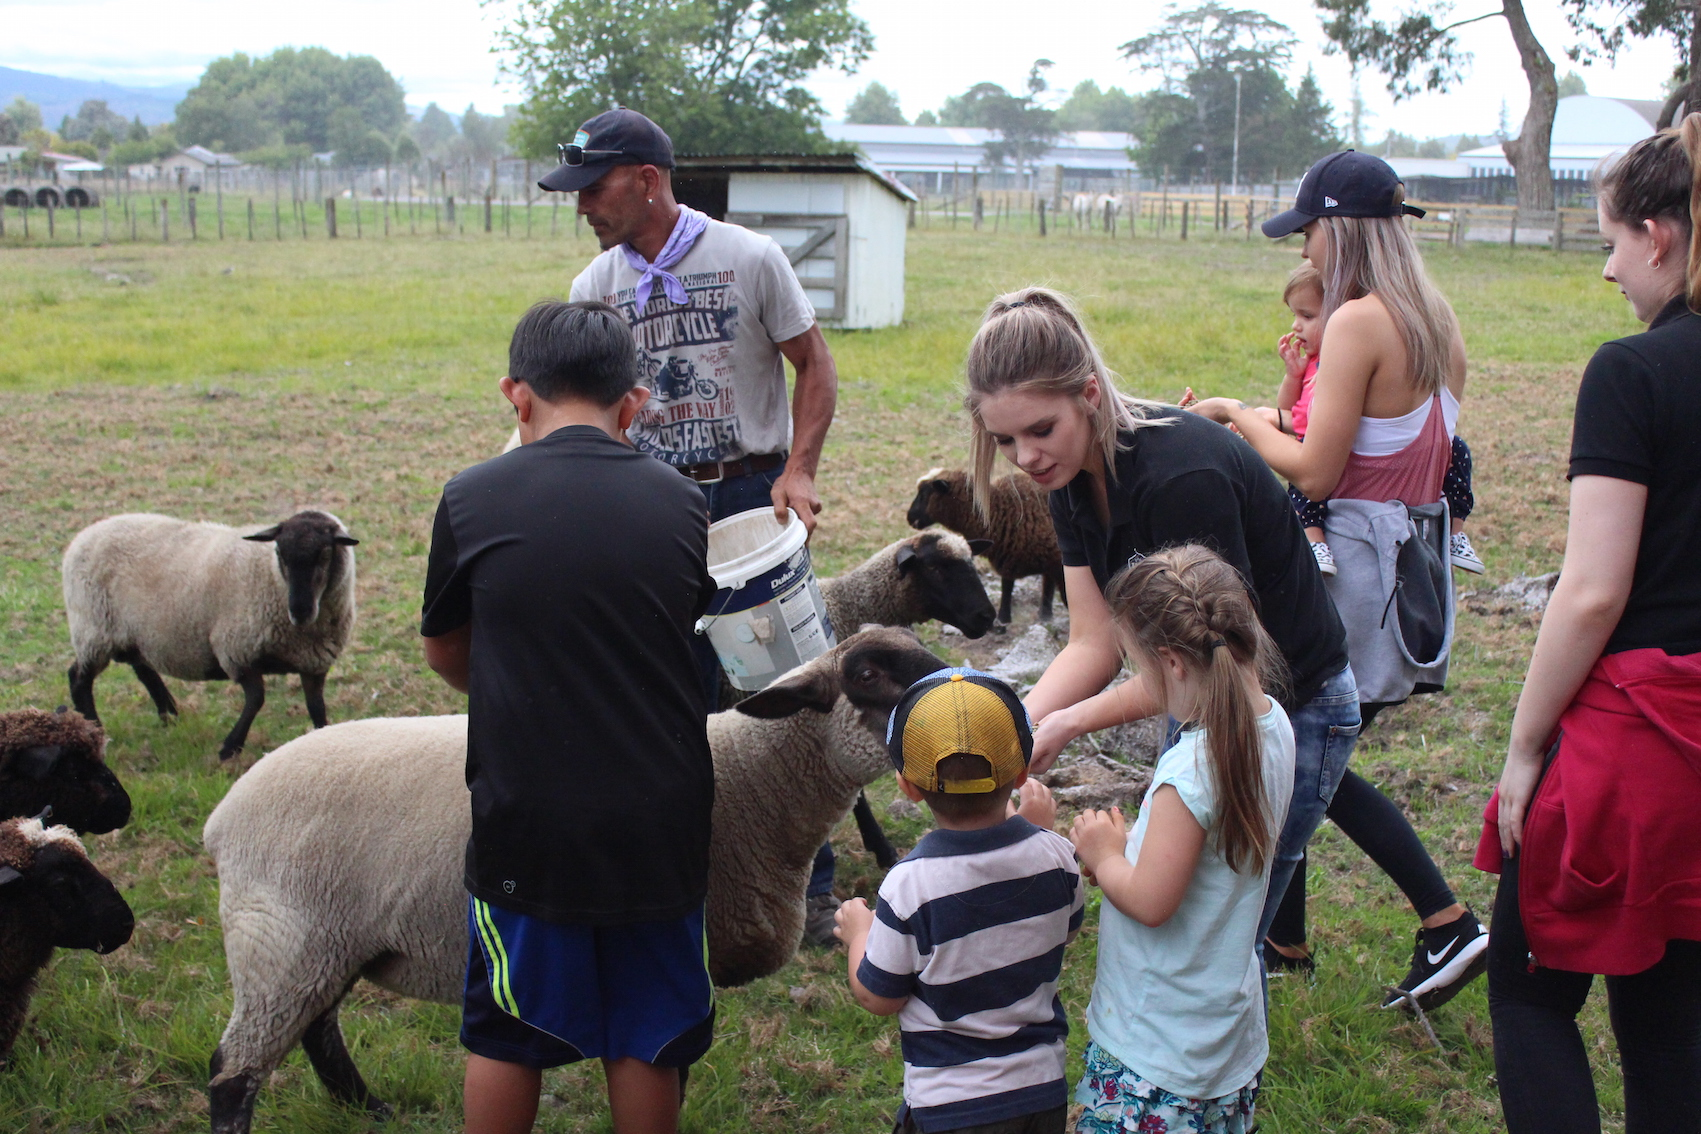 The Farm Tour for the long weekend